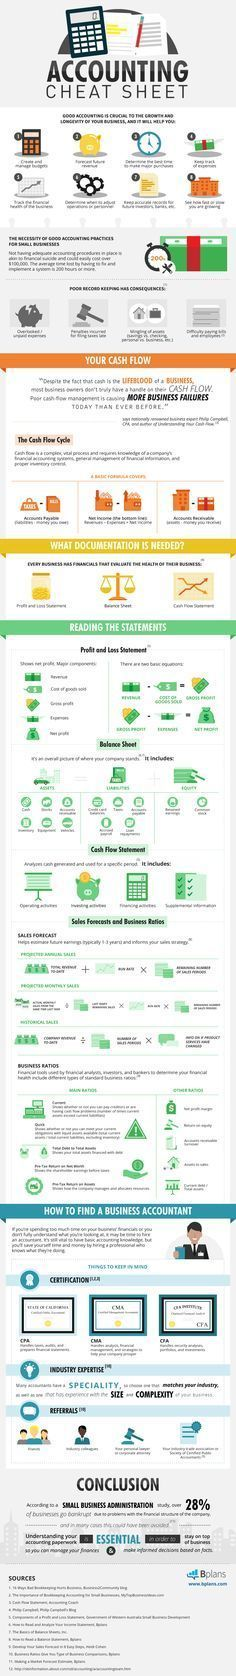 Best 25+ Accounting help ideas on Pinterest Accounting basics - sample balance sheet template